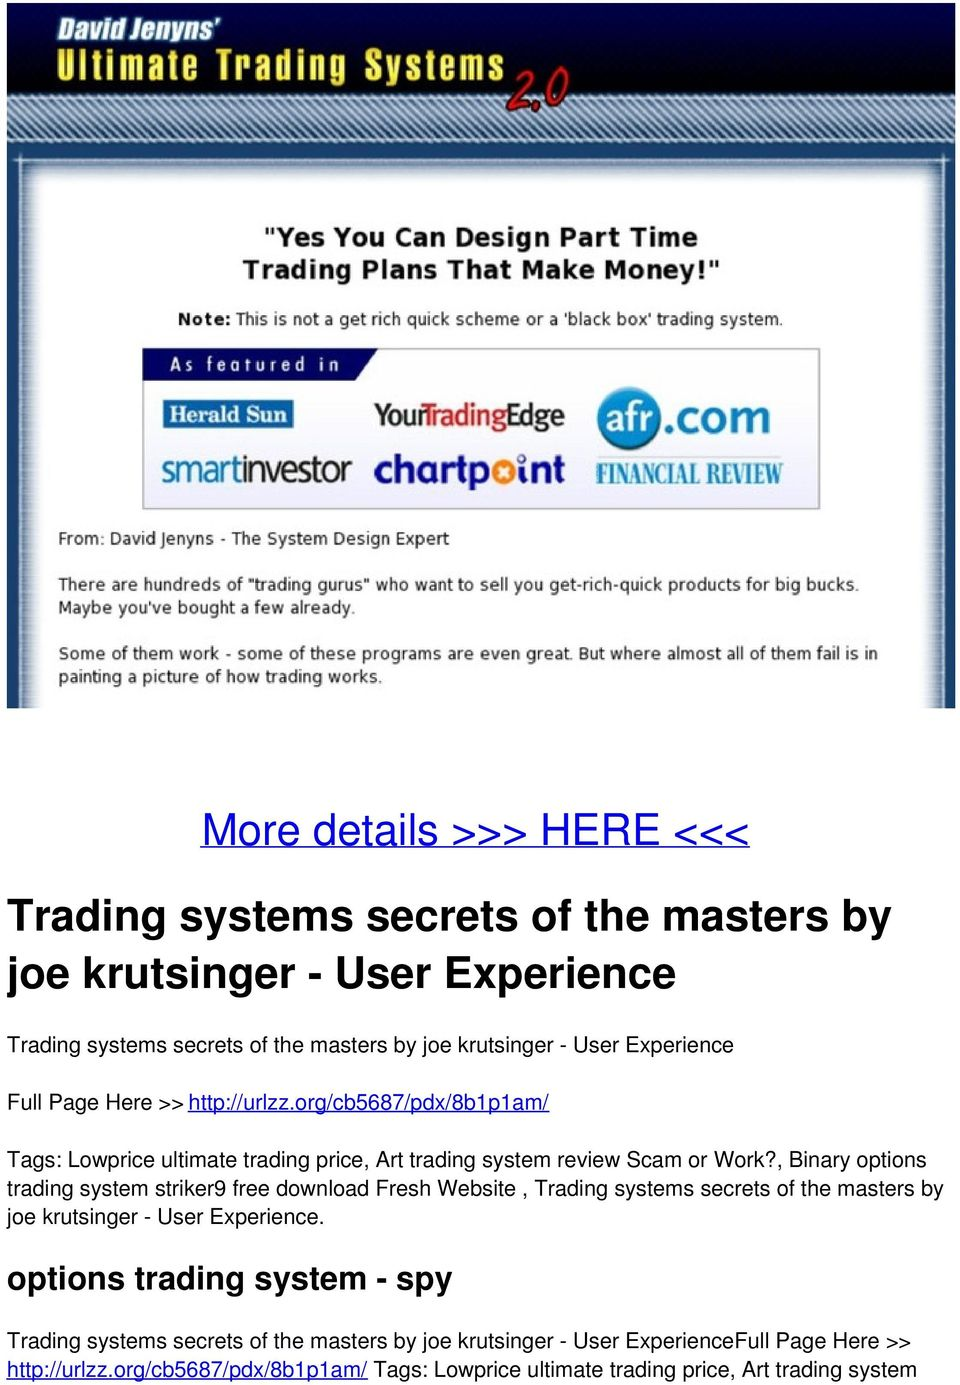 Trading systems secrets of the masters pdf download